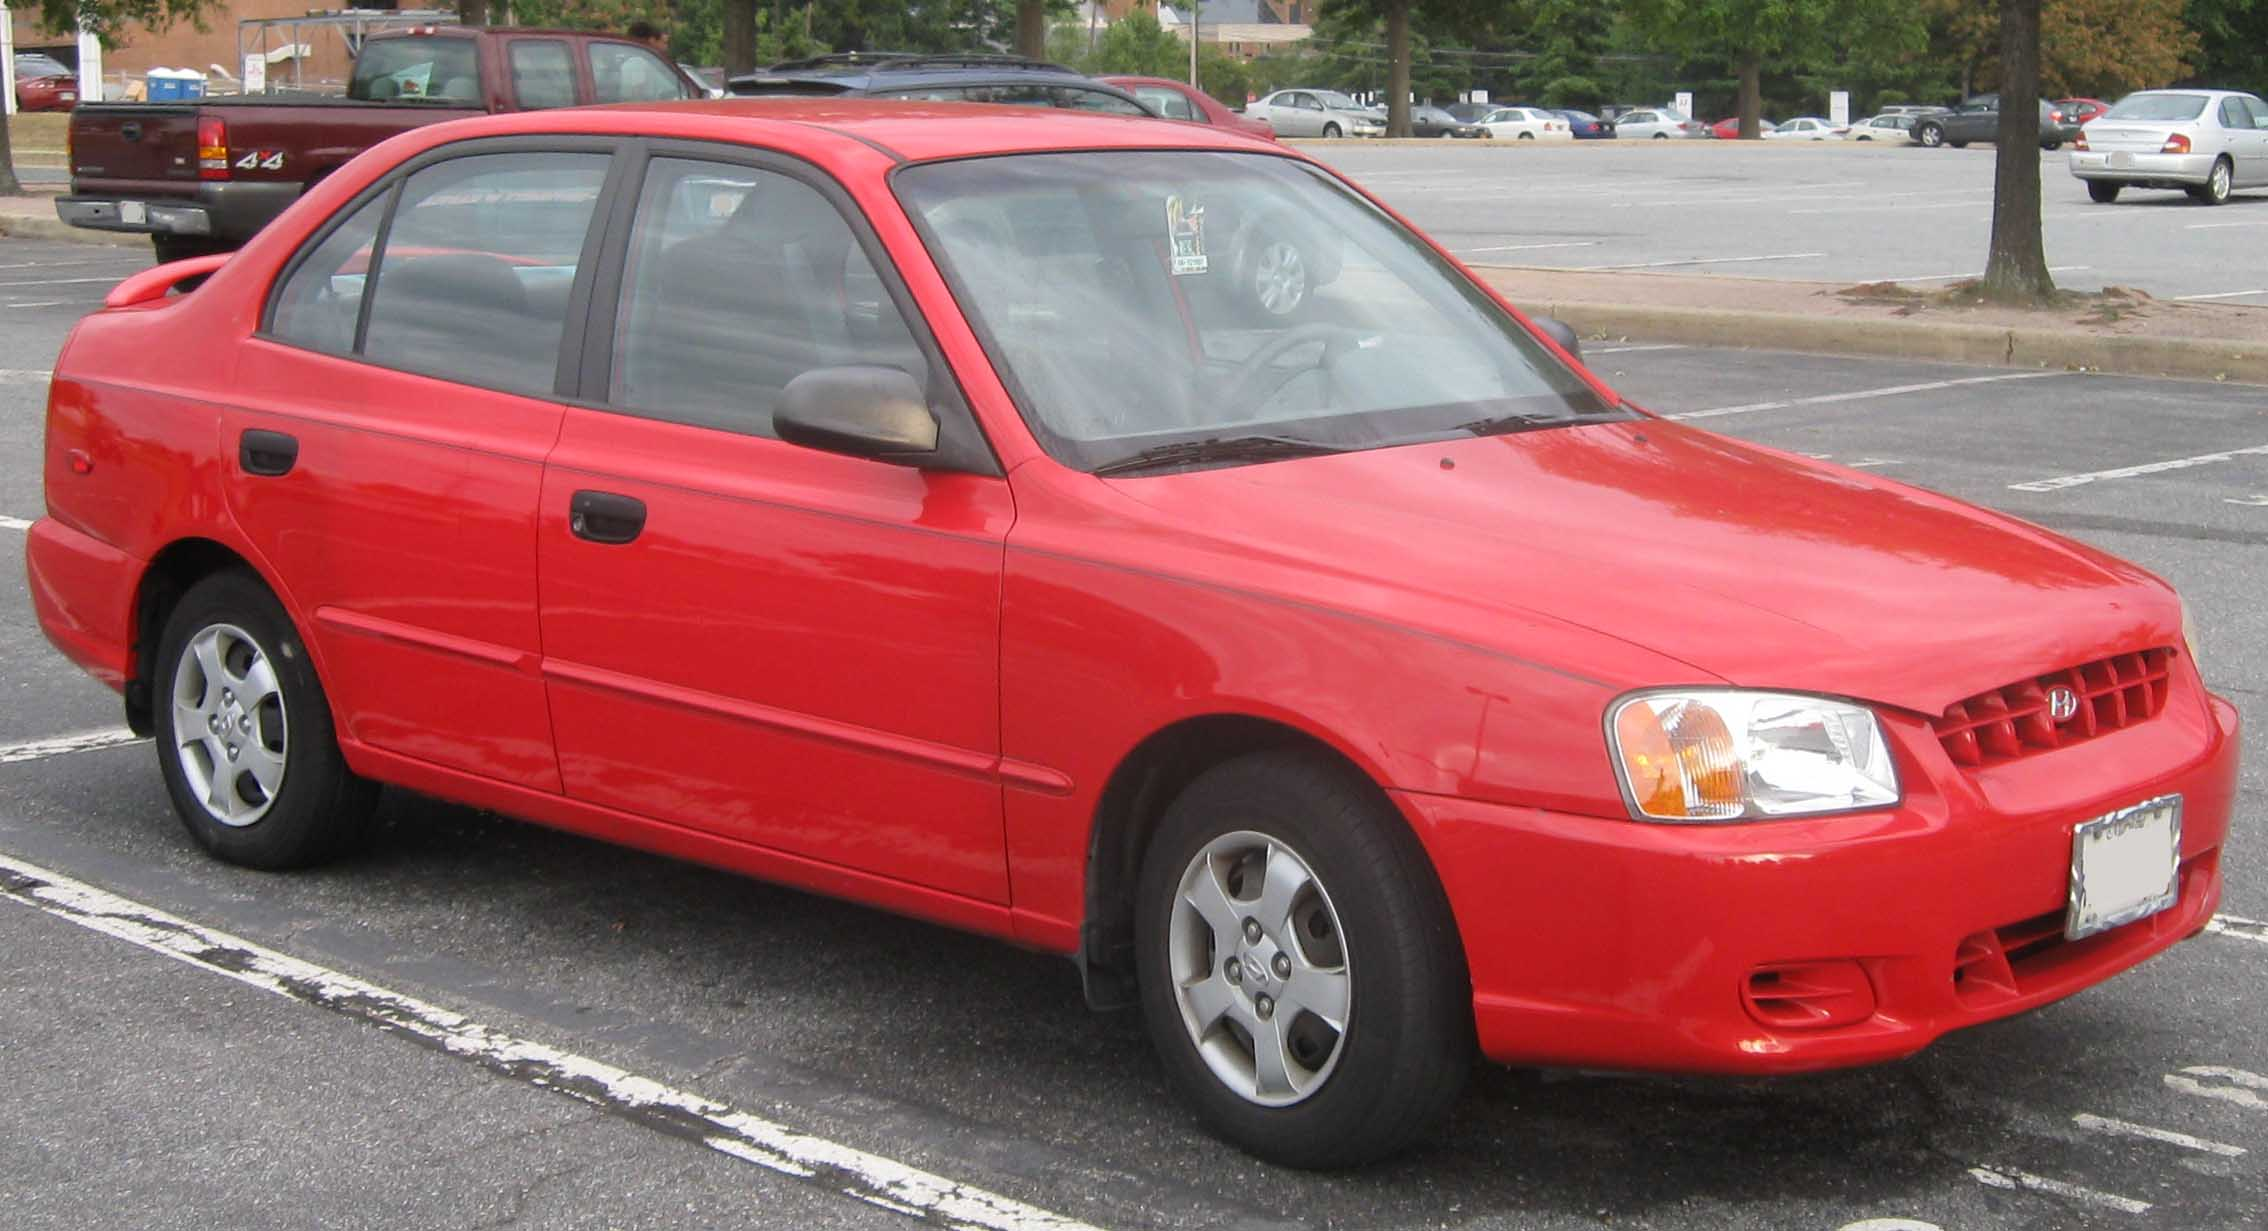 2002 Hyundai Accent Red 200 Interior And Exterior Images